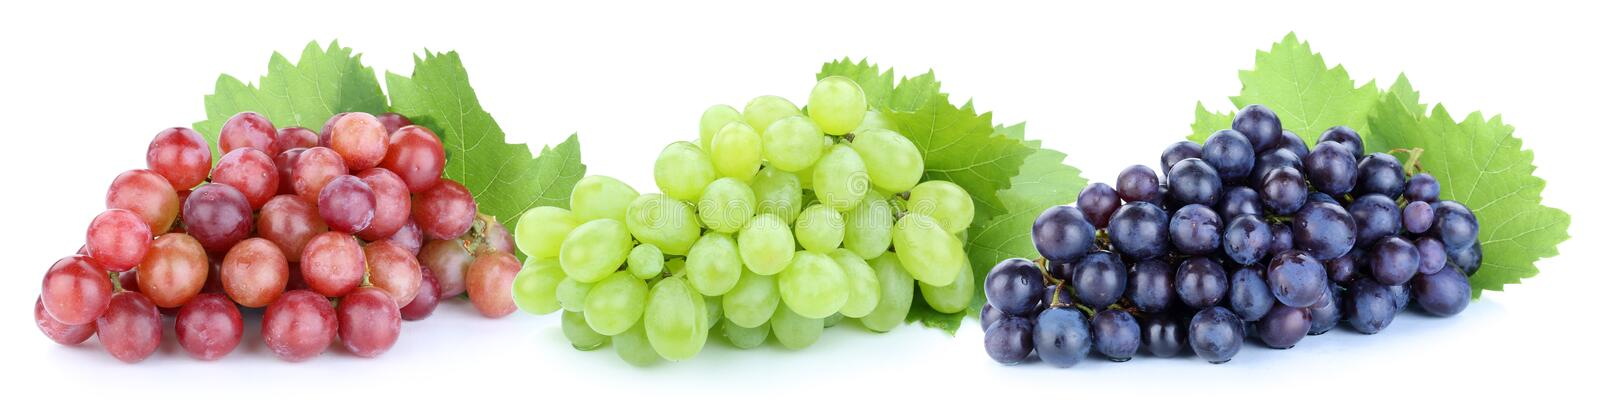 Grapes red green blue fruits fruit isolated on white royalty free stock photos